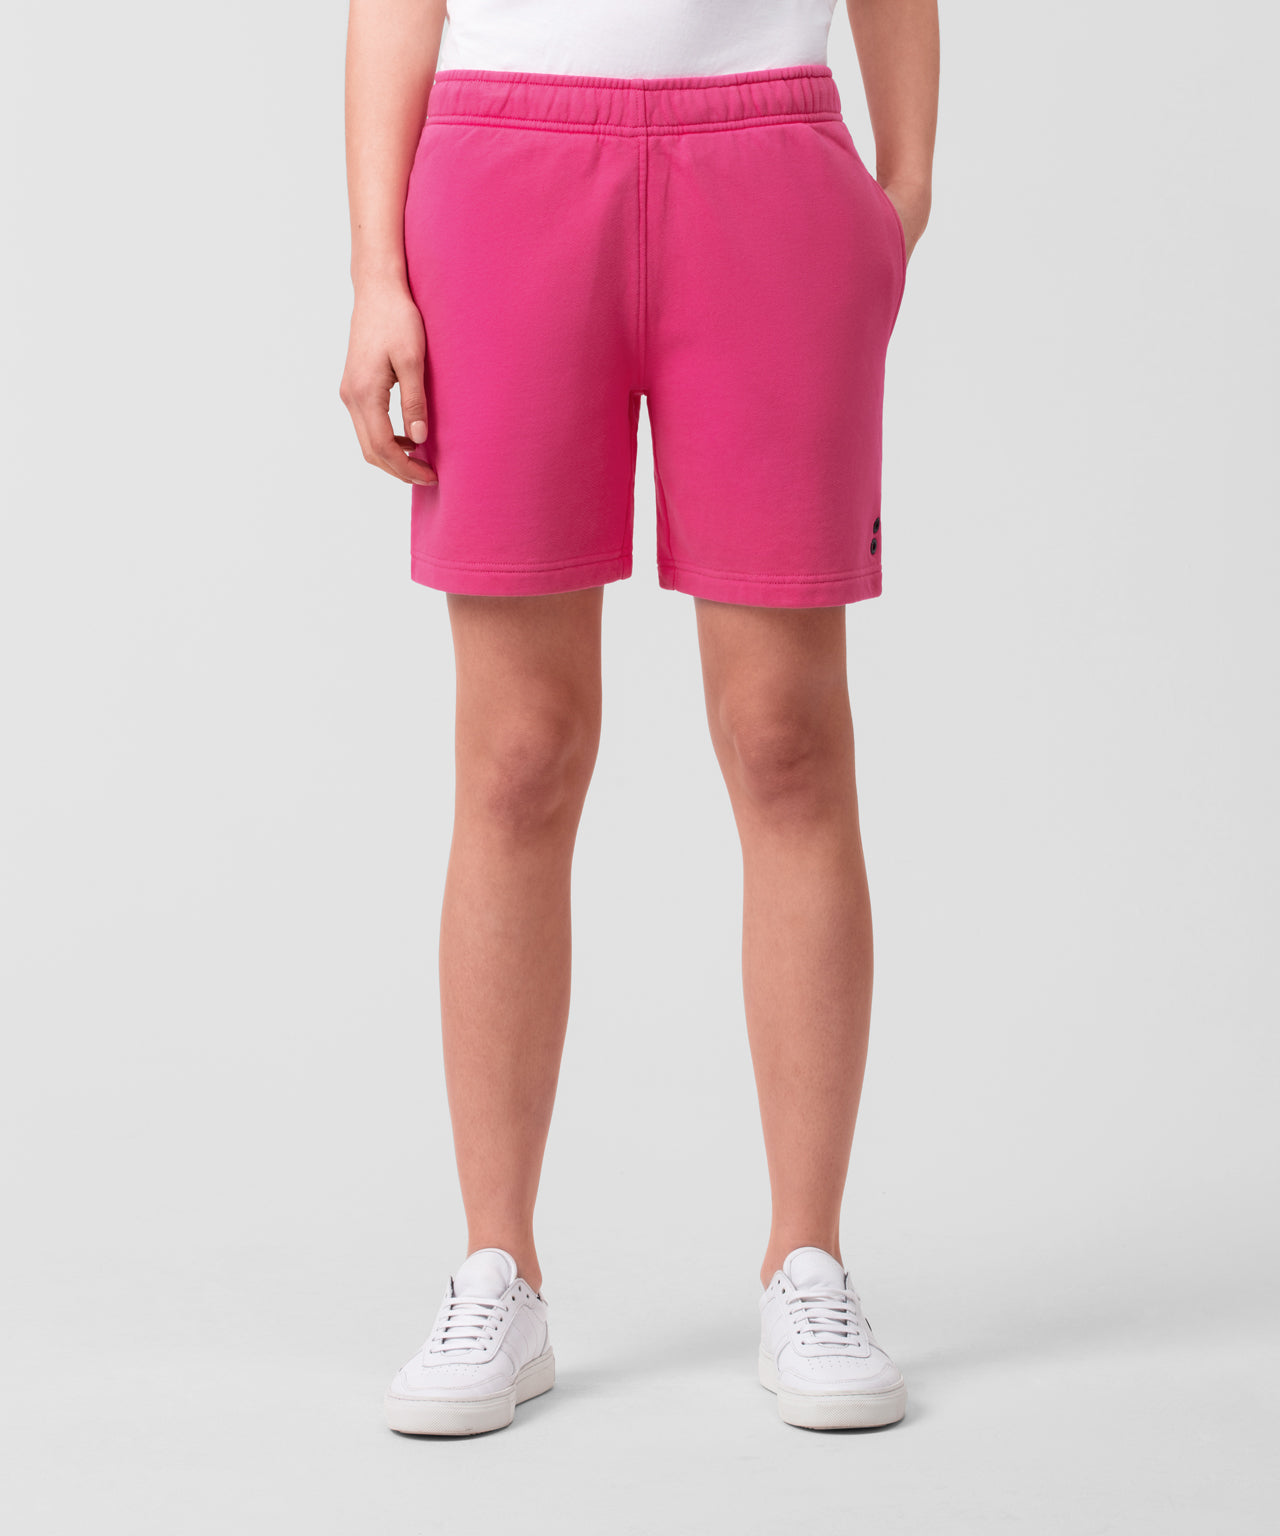 Jogging Shorts His For Her - hot pink